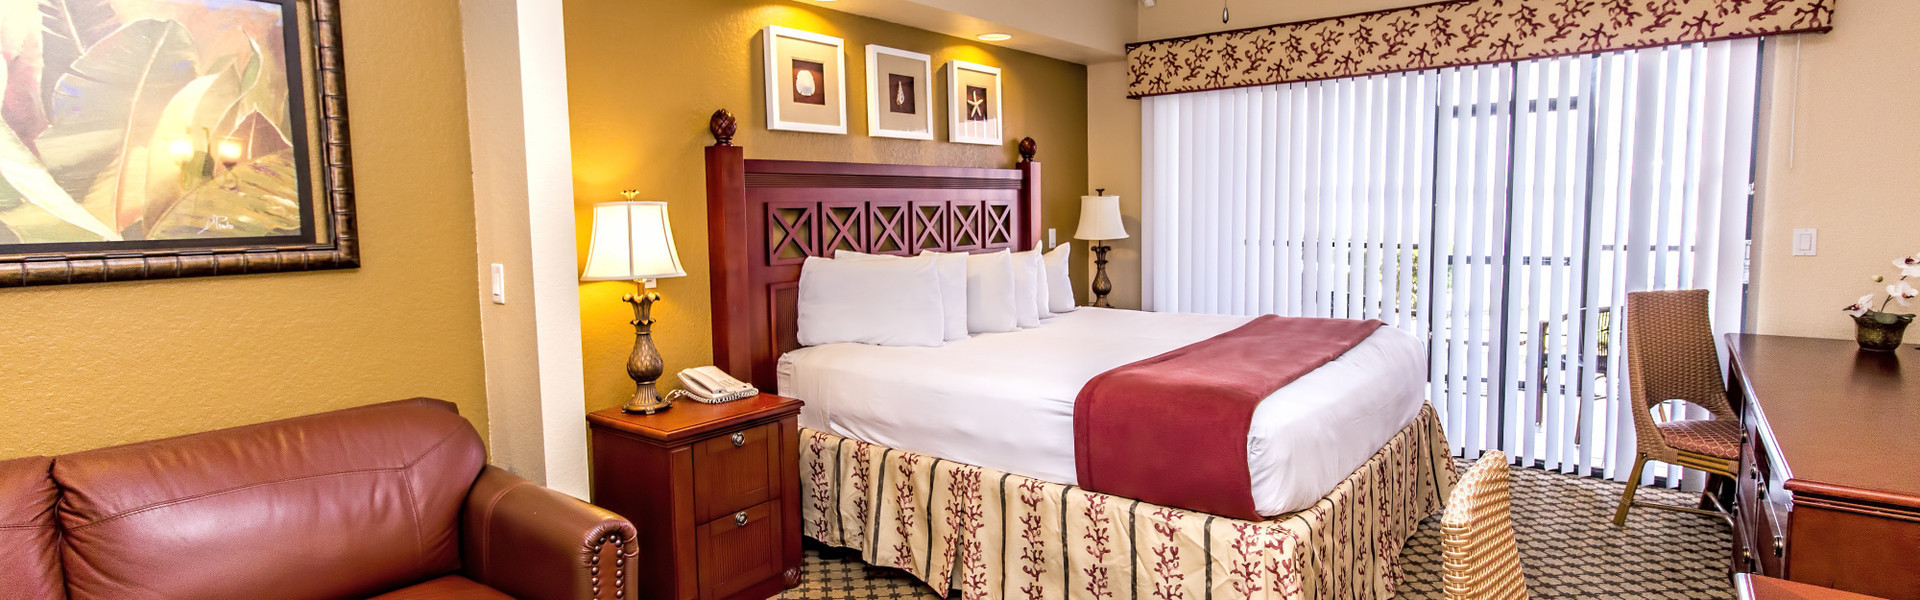 Luxury accommodations in a studio villa at affordable prices near Orlando's favorite theme parks and attractions | Westgate Lakes Resort